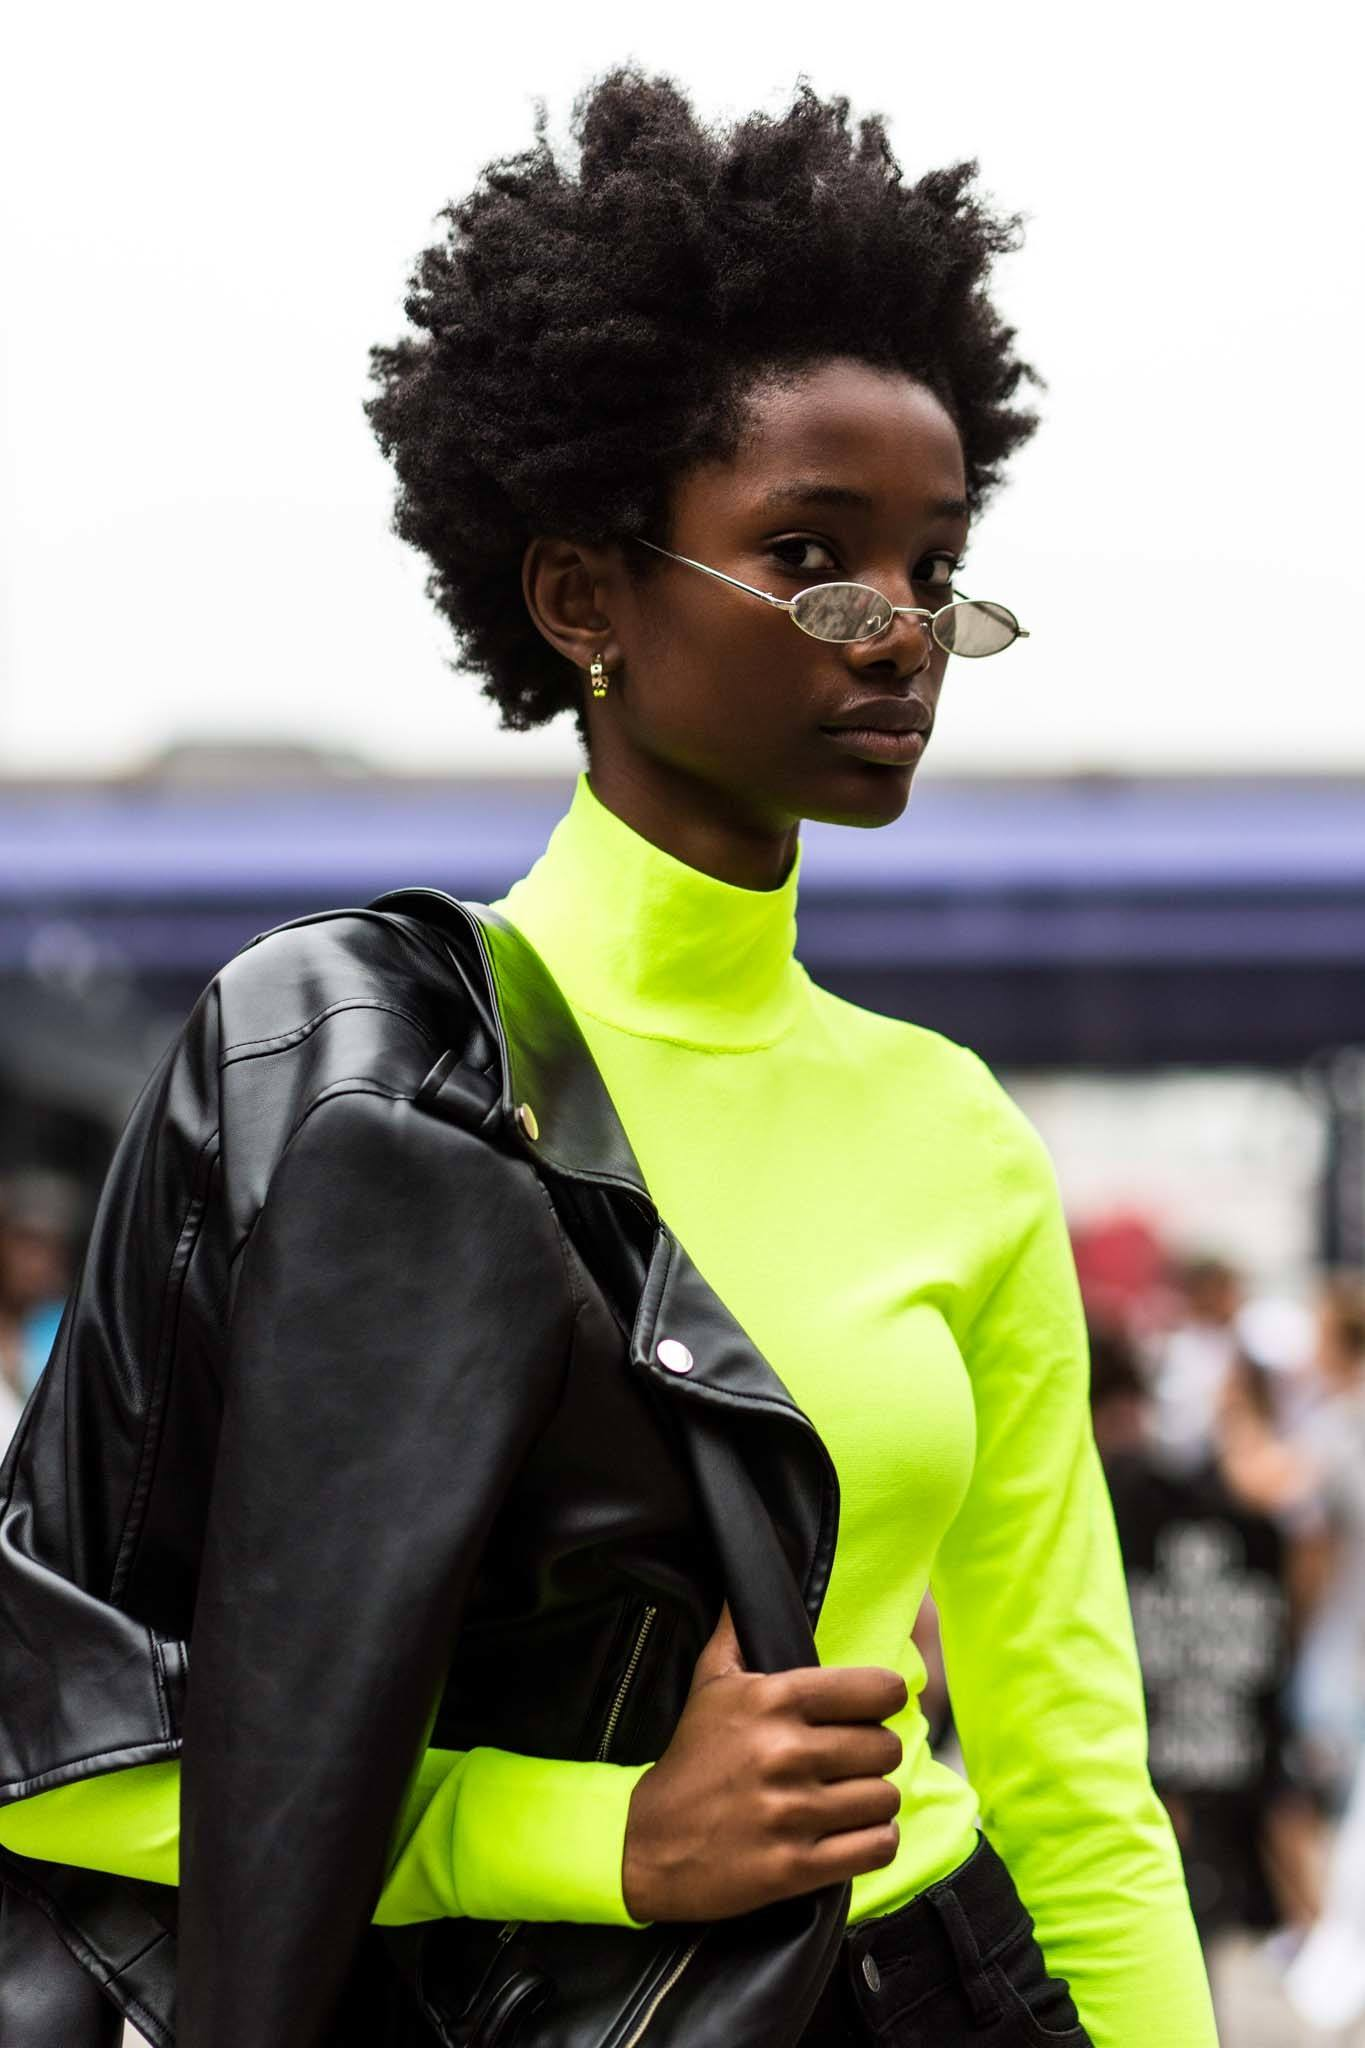 afro hair inspo: edgy afro